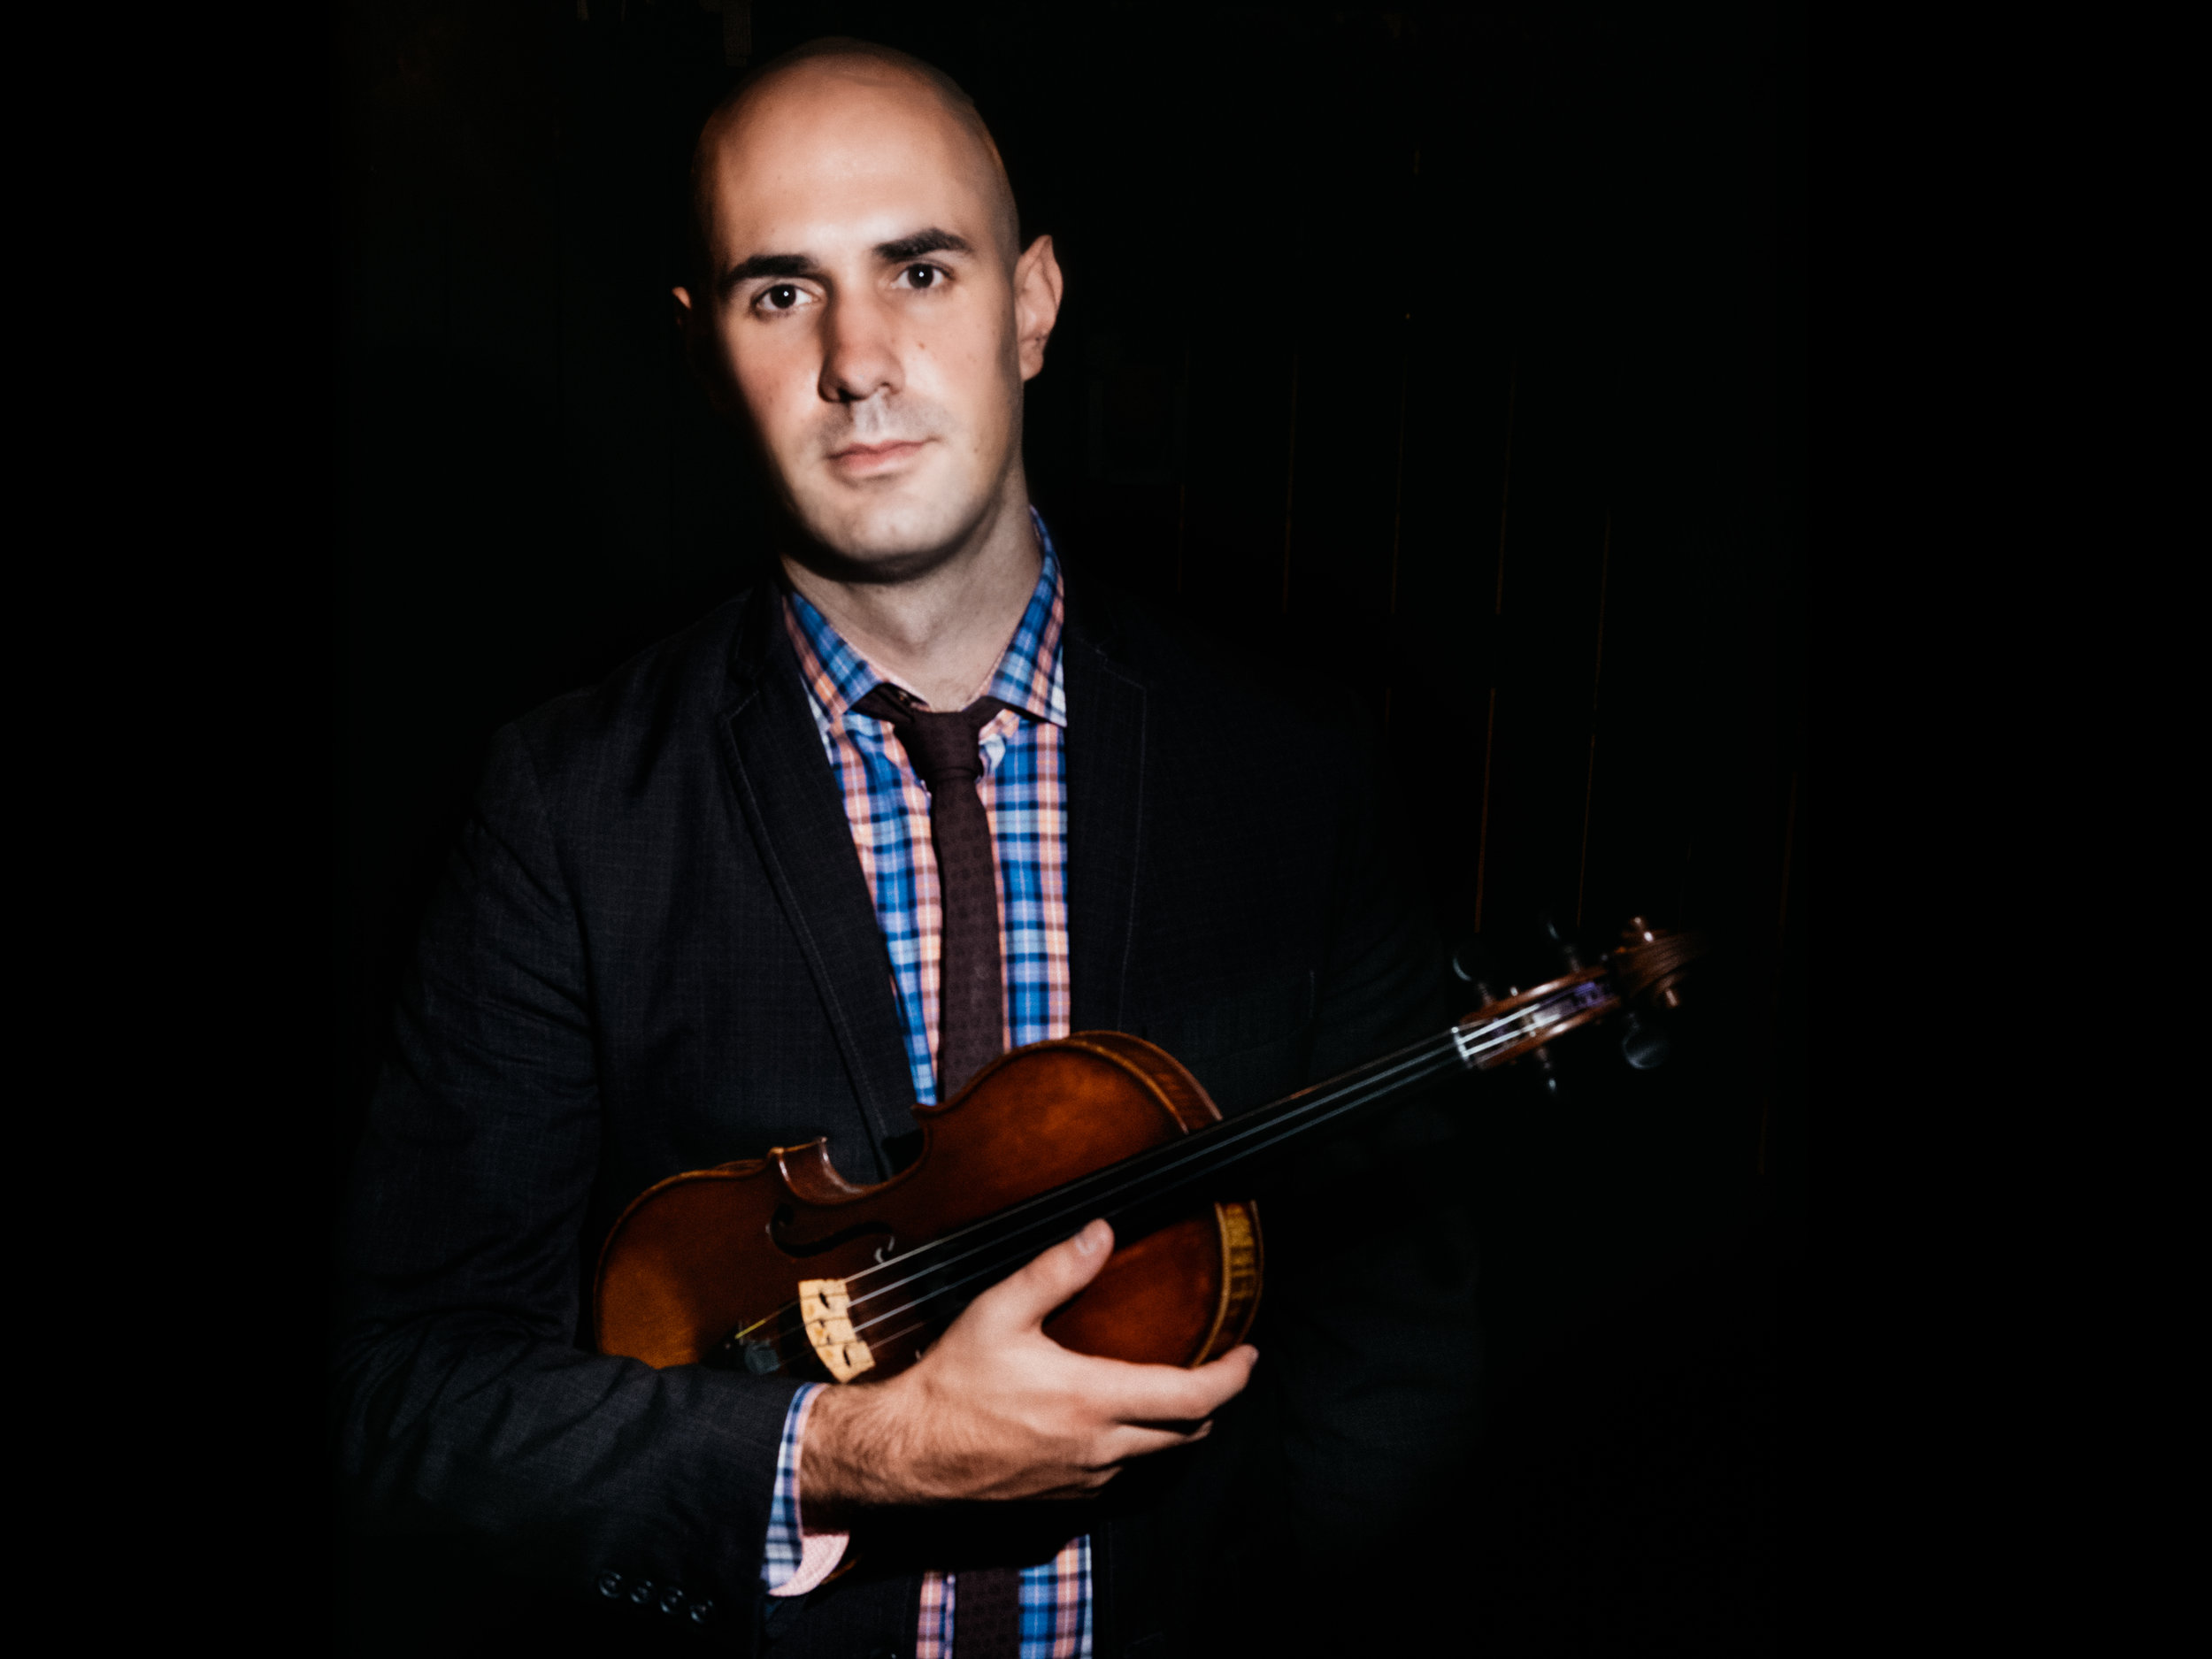 nick montopoli - Nick is a violinist, banjo player, and co-composer for Invoke, a folk-infused string group whose repertoire features original compositions by the group and works by exciting young American composers. Invoke won First Prize at the 2018 M-Prize and Coltman competitions, and maintains an active performance schedule around the country. Nick also performs as Concertmaster of the Round Rock Symphony, and frequently joins other local groups including the Austin Symphony and Tetractys. Nick and Invoke have collaborated with Graham and Golden Hornet on a number of live and studio projects over the past few years, including the String Quartet Smackdown and Ballet Austin's Grimm Tales. Alongside James, he supports Graham's daily studio work. For more on Nick's projects, check out his website.